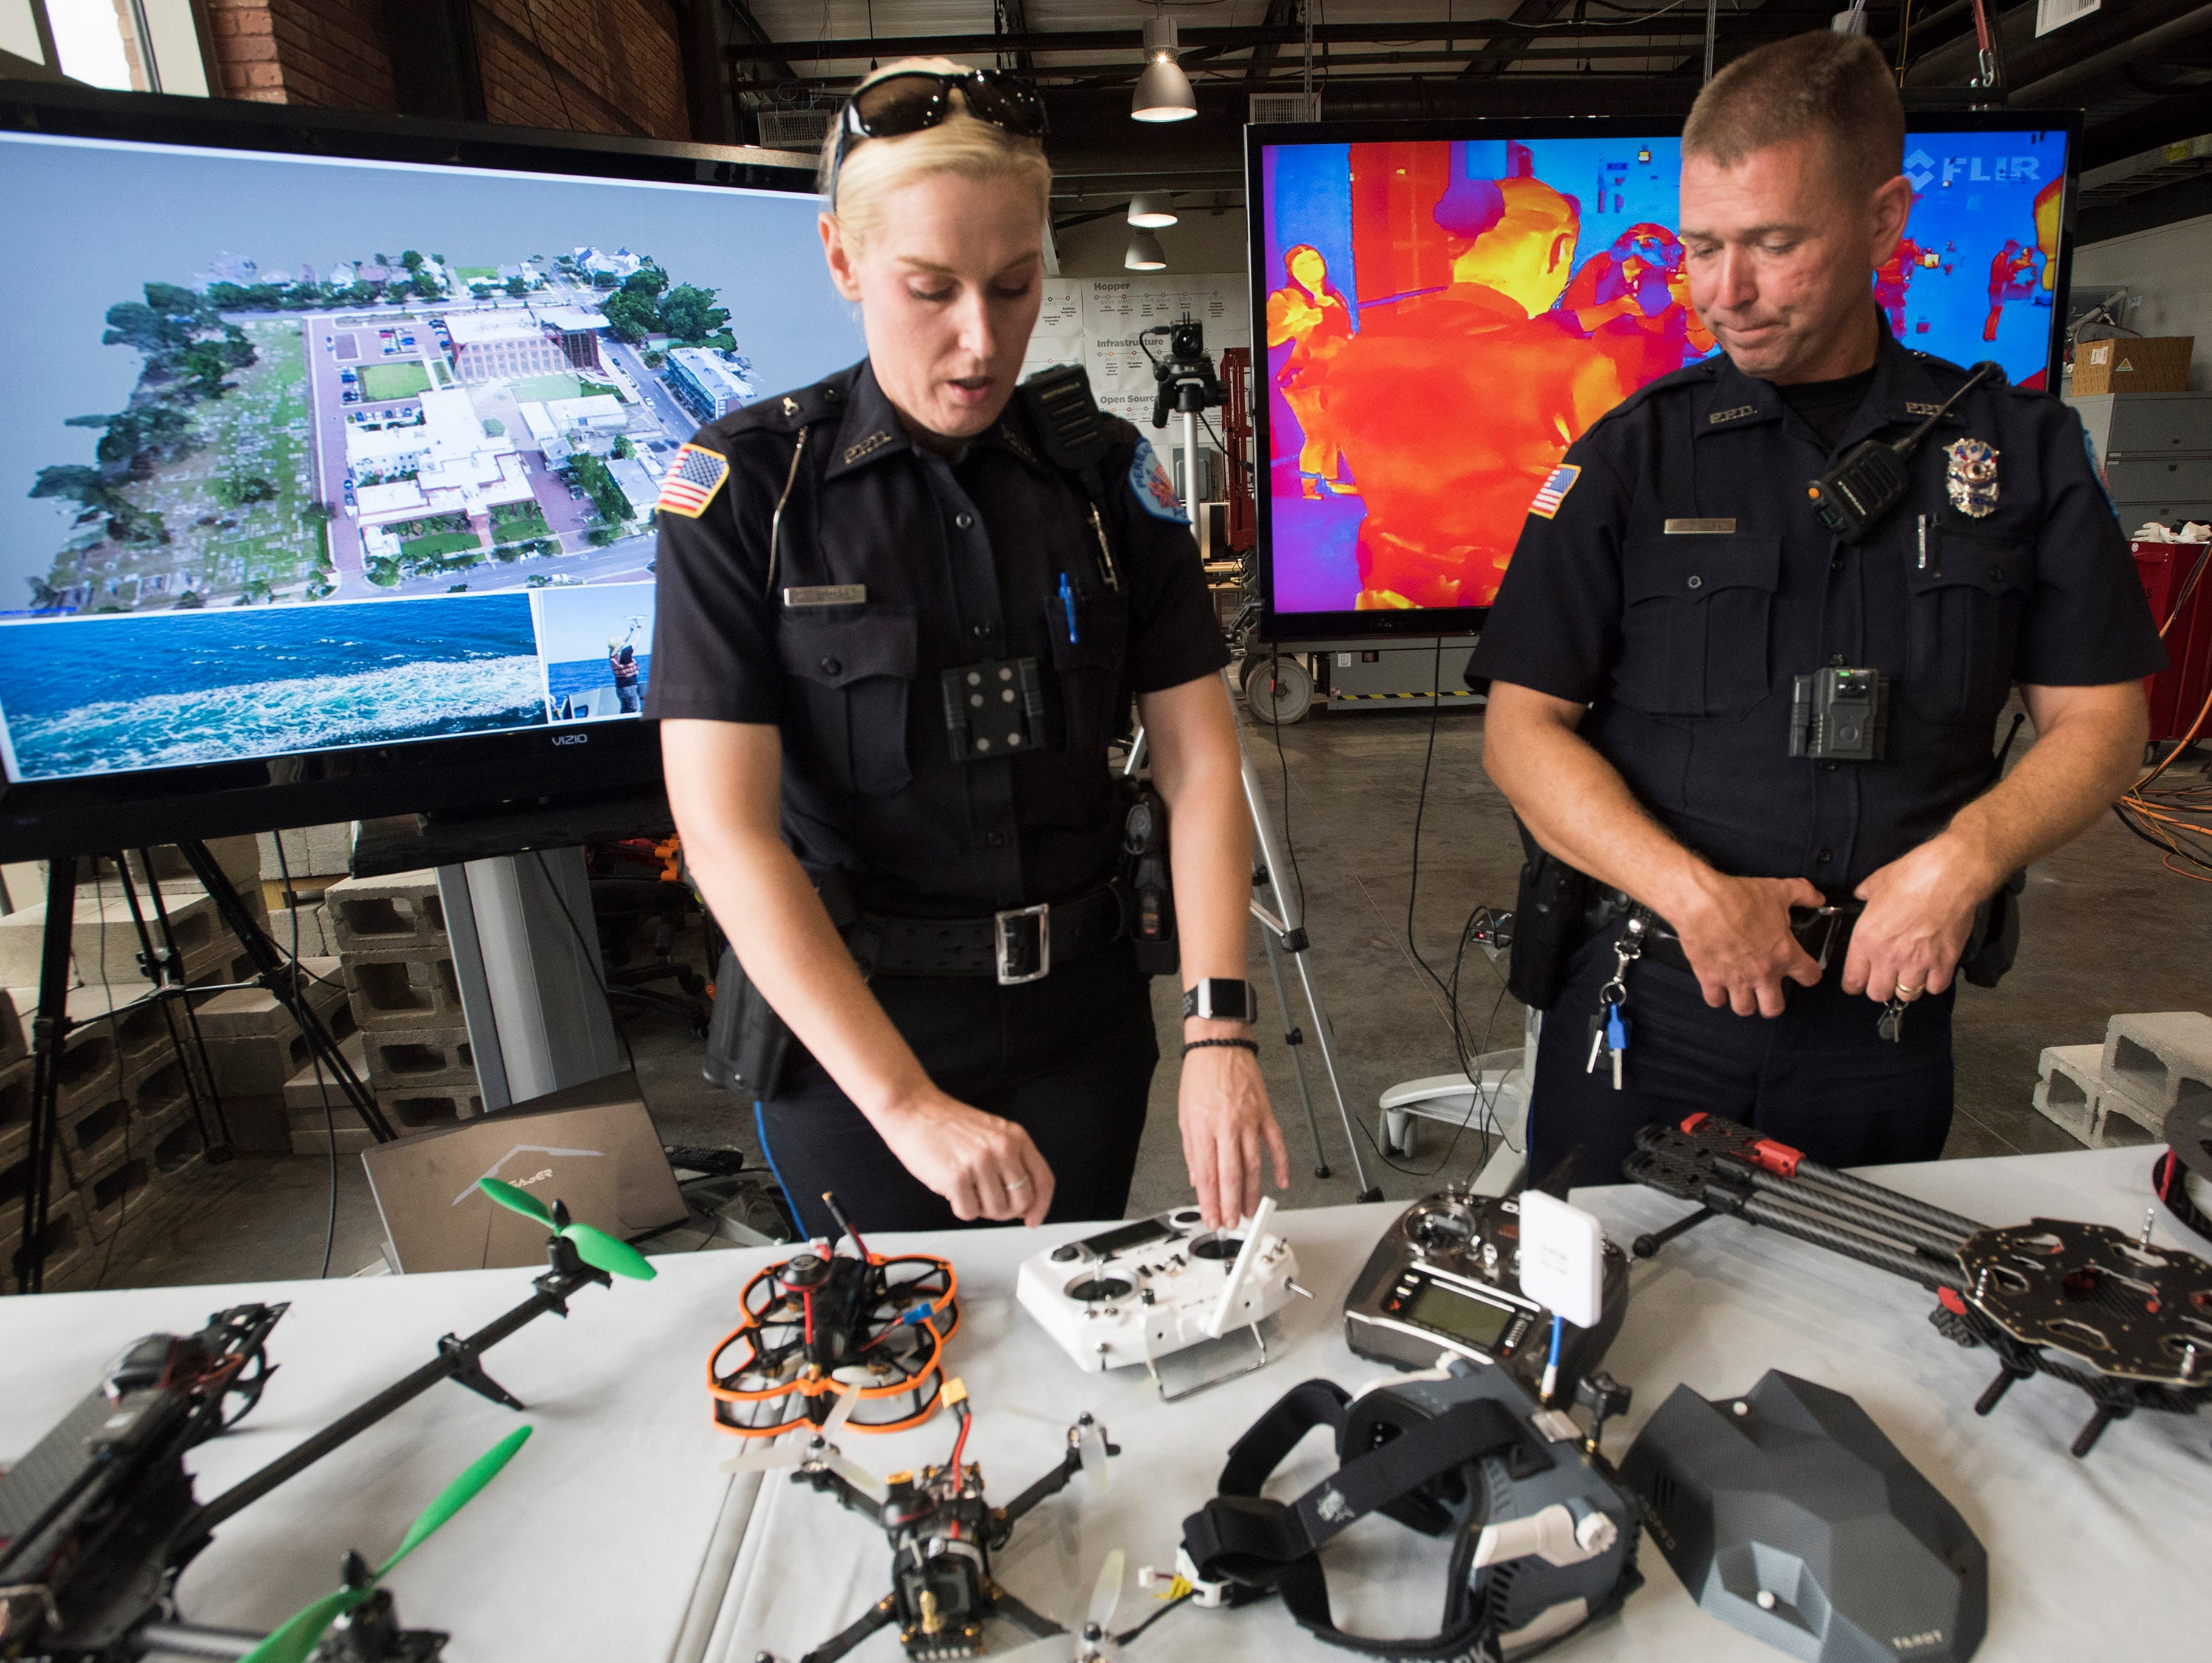 Pensacola Police Officers Kelly Eierhart and Robert Lindblom talk about the drone technology on display at the Institute of Human and Machine Cognition on Thursday, Aug. 16, 2018. PPD and IHMC are working together on a plan to use drones to help law enforcement.